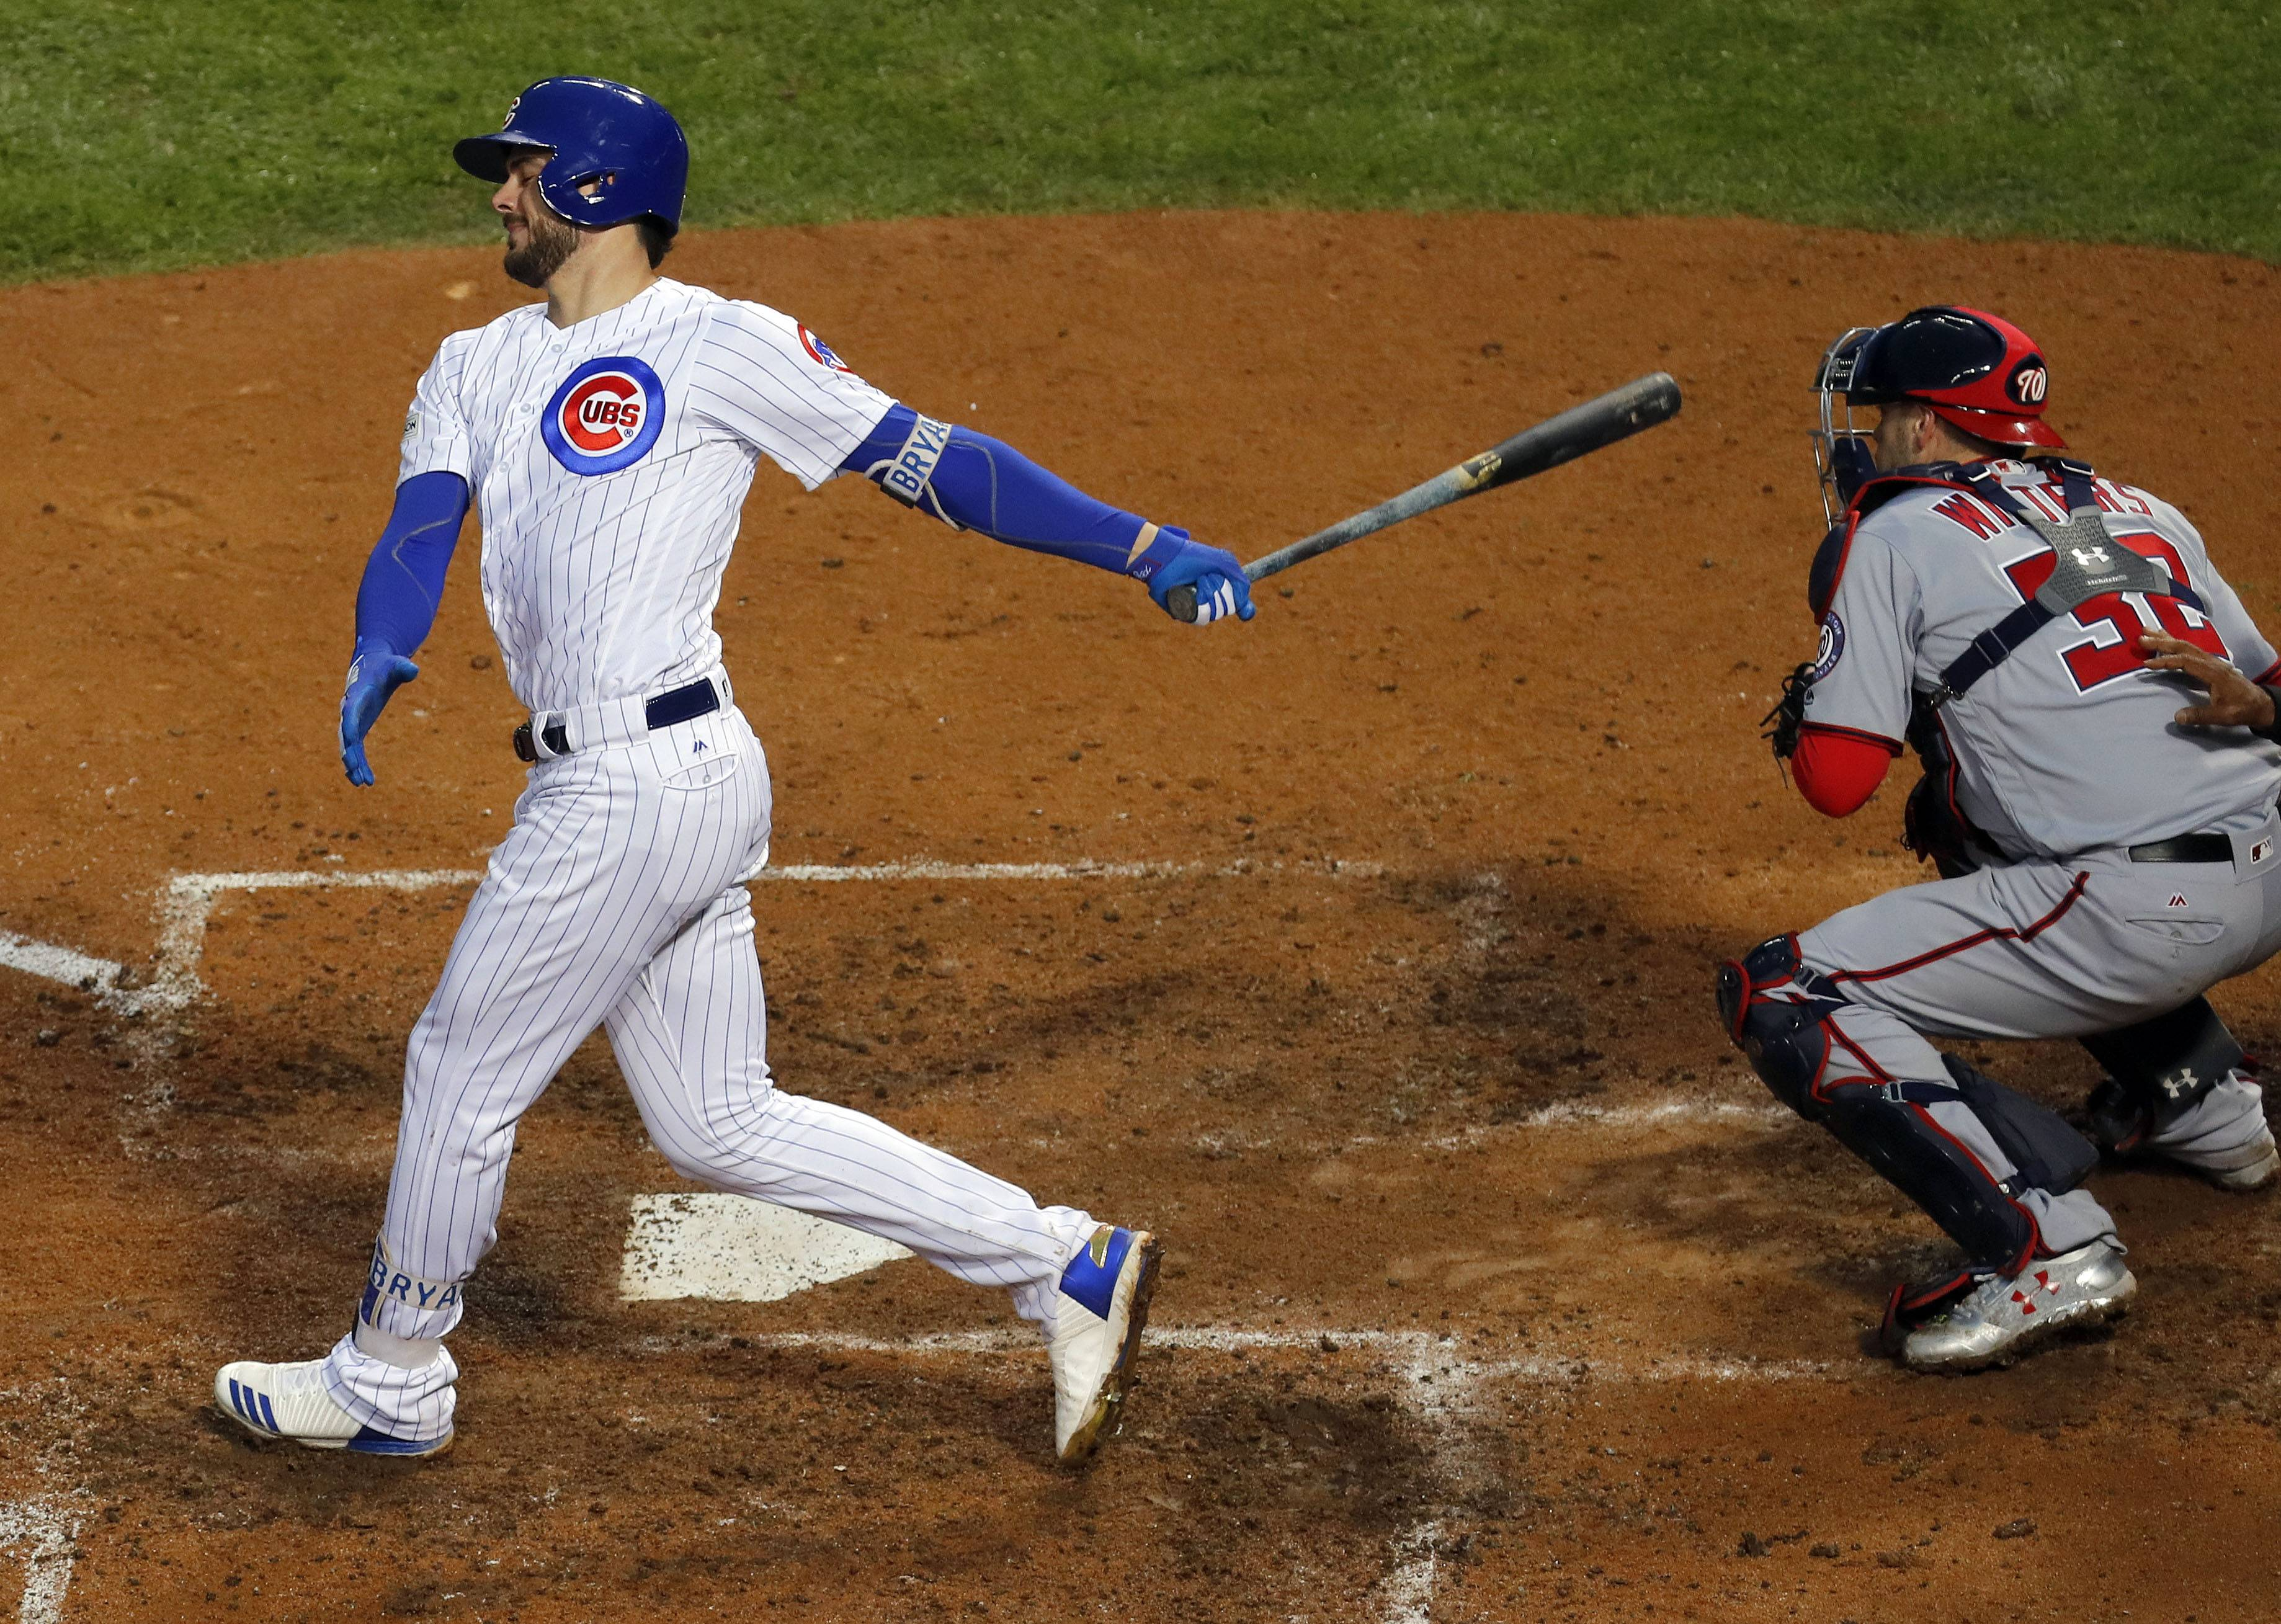 Chicago Cubs third baseman Kris Bryant strikes out for the 4th time during Game 4 of the National League division series at Wrigley Field in Chicago Wednesday, October 11, 2017.